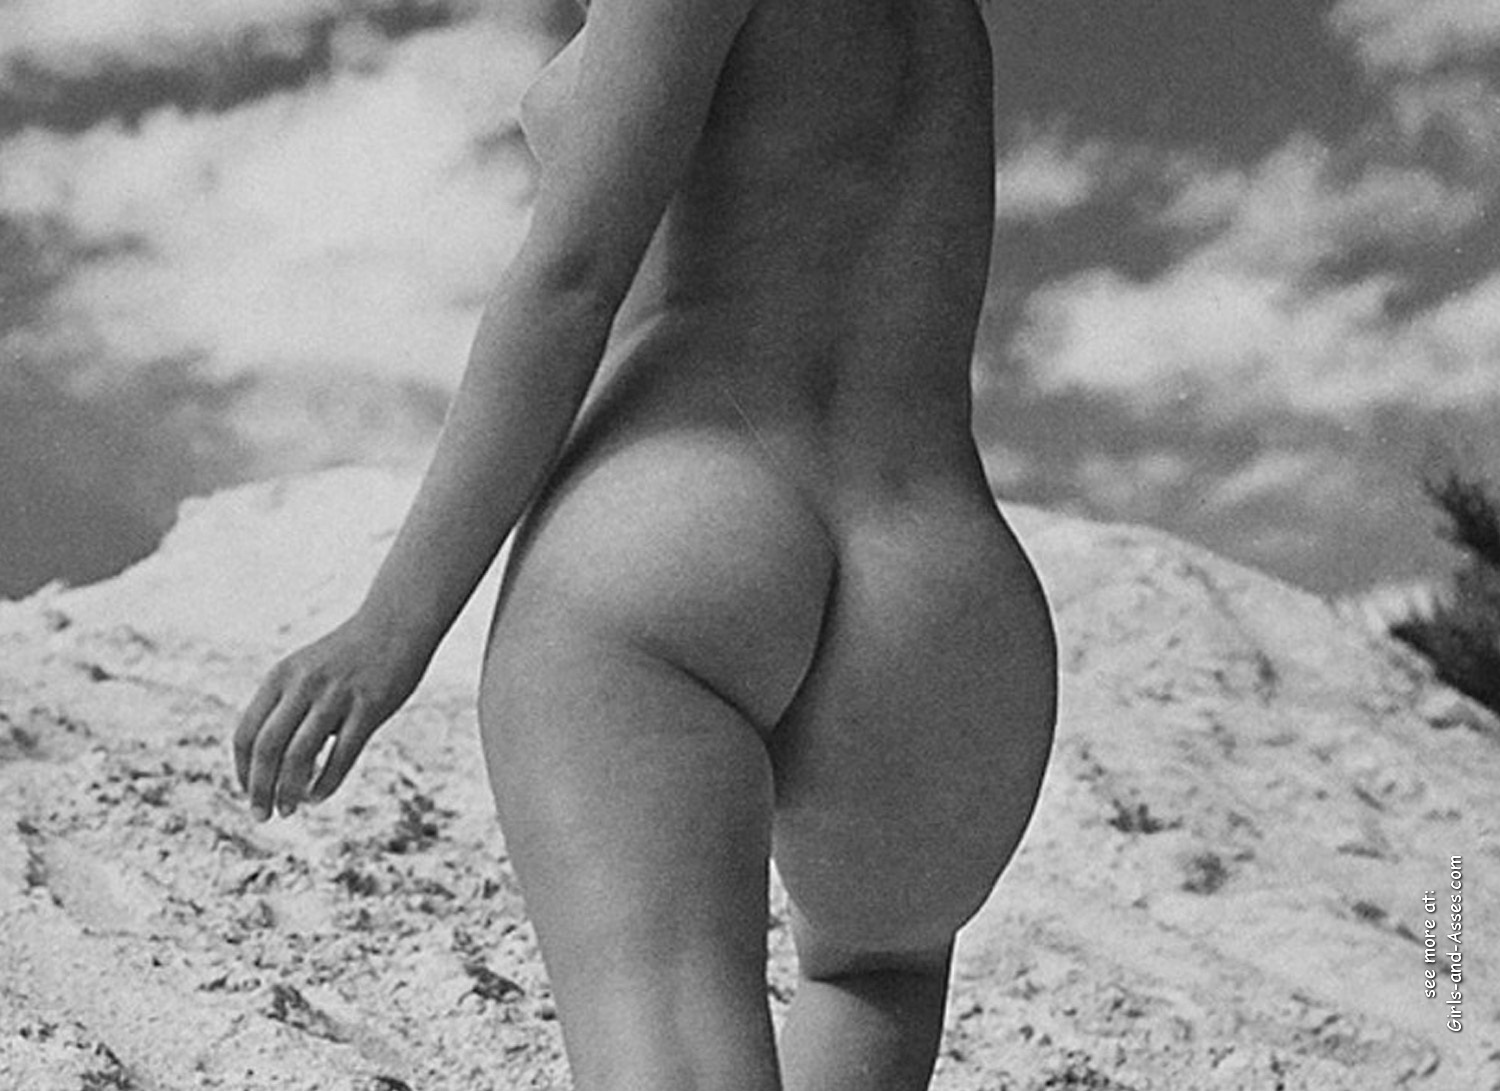 amatuer nude girl at the beach photography 02627